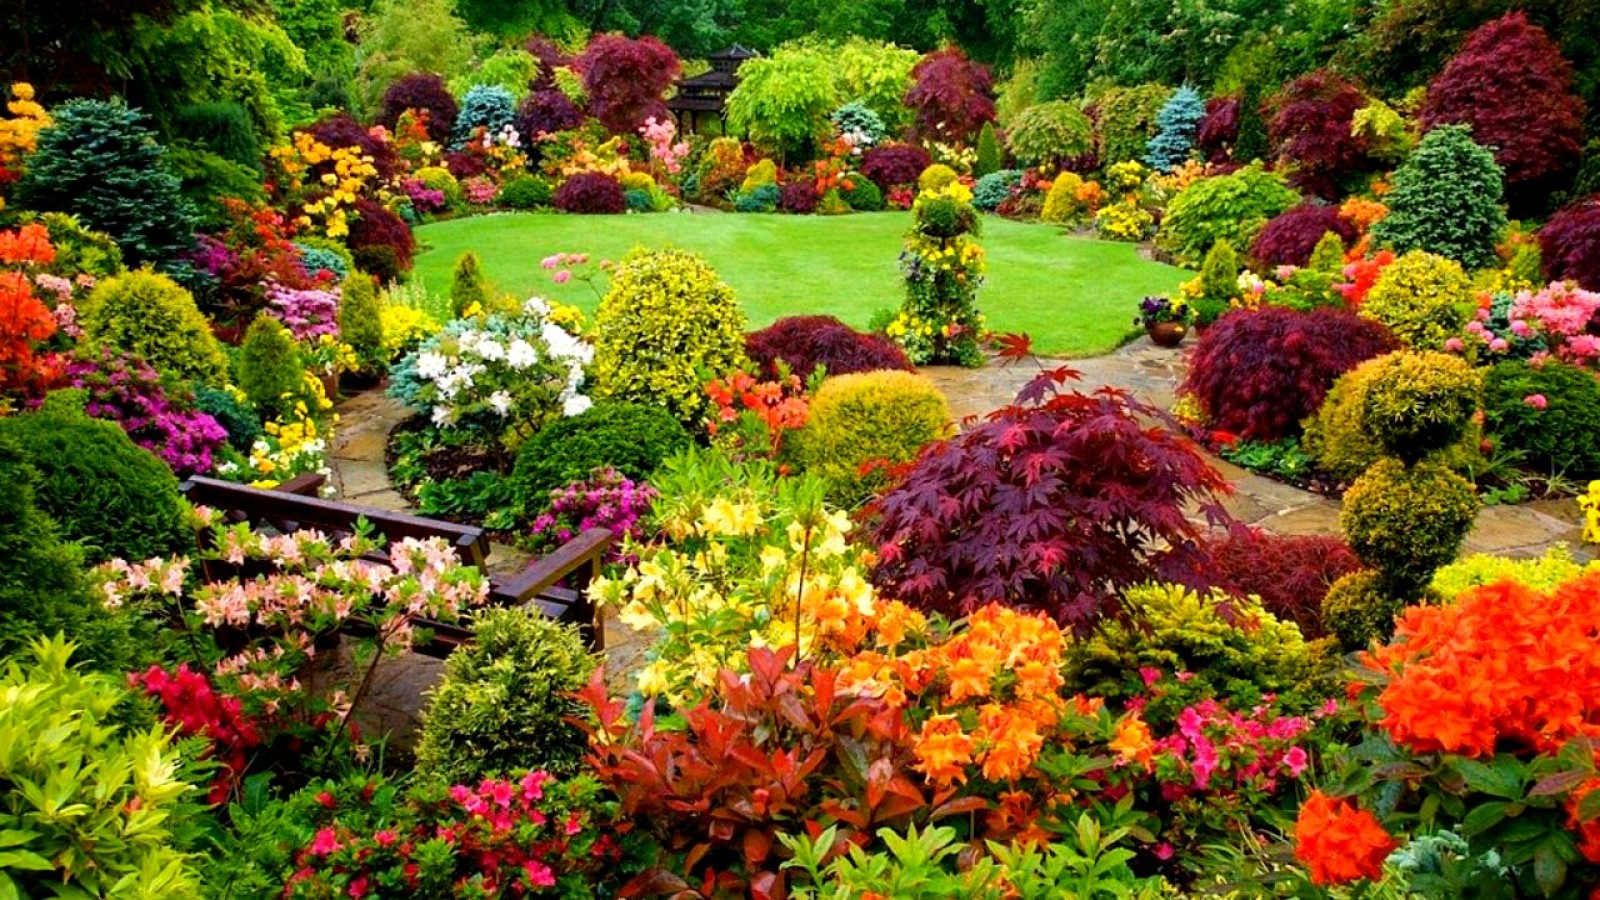 Garden jigsaw puzzles proprofs jigsaw puzzle games for Beauty garden